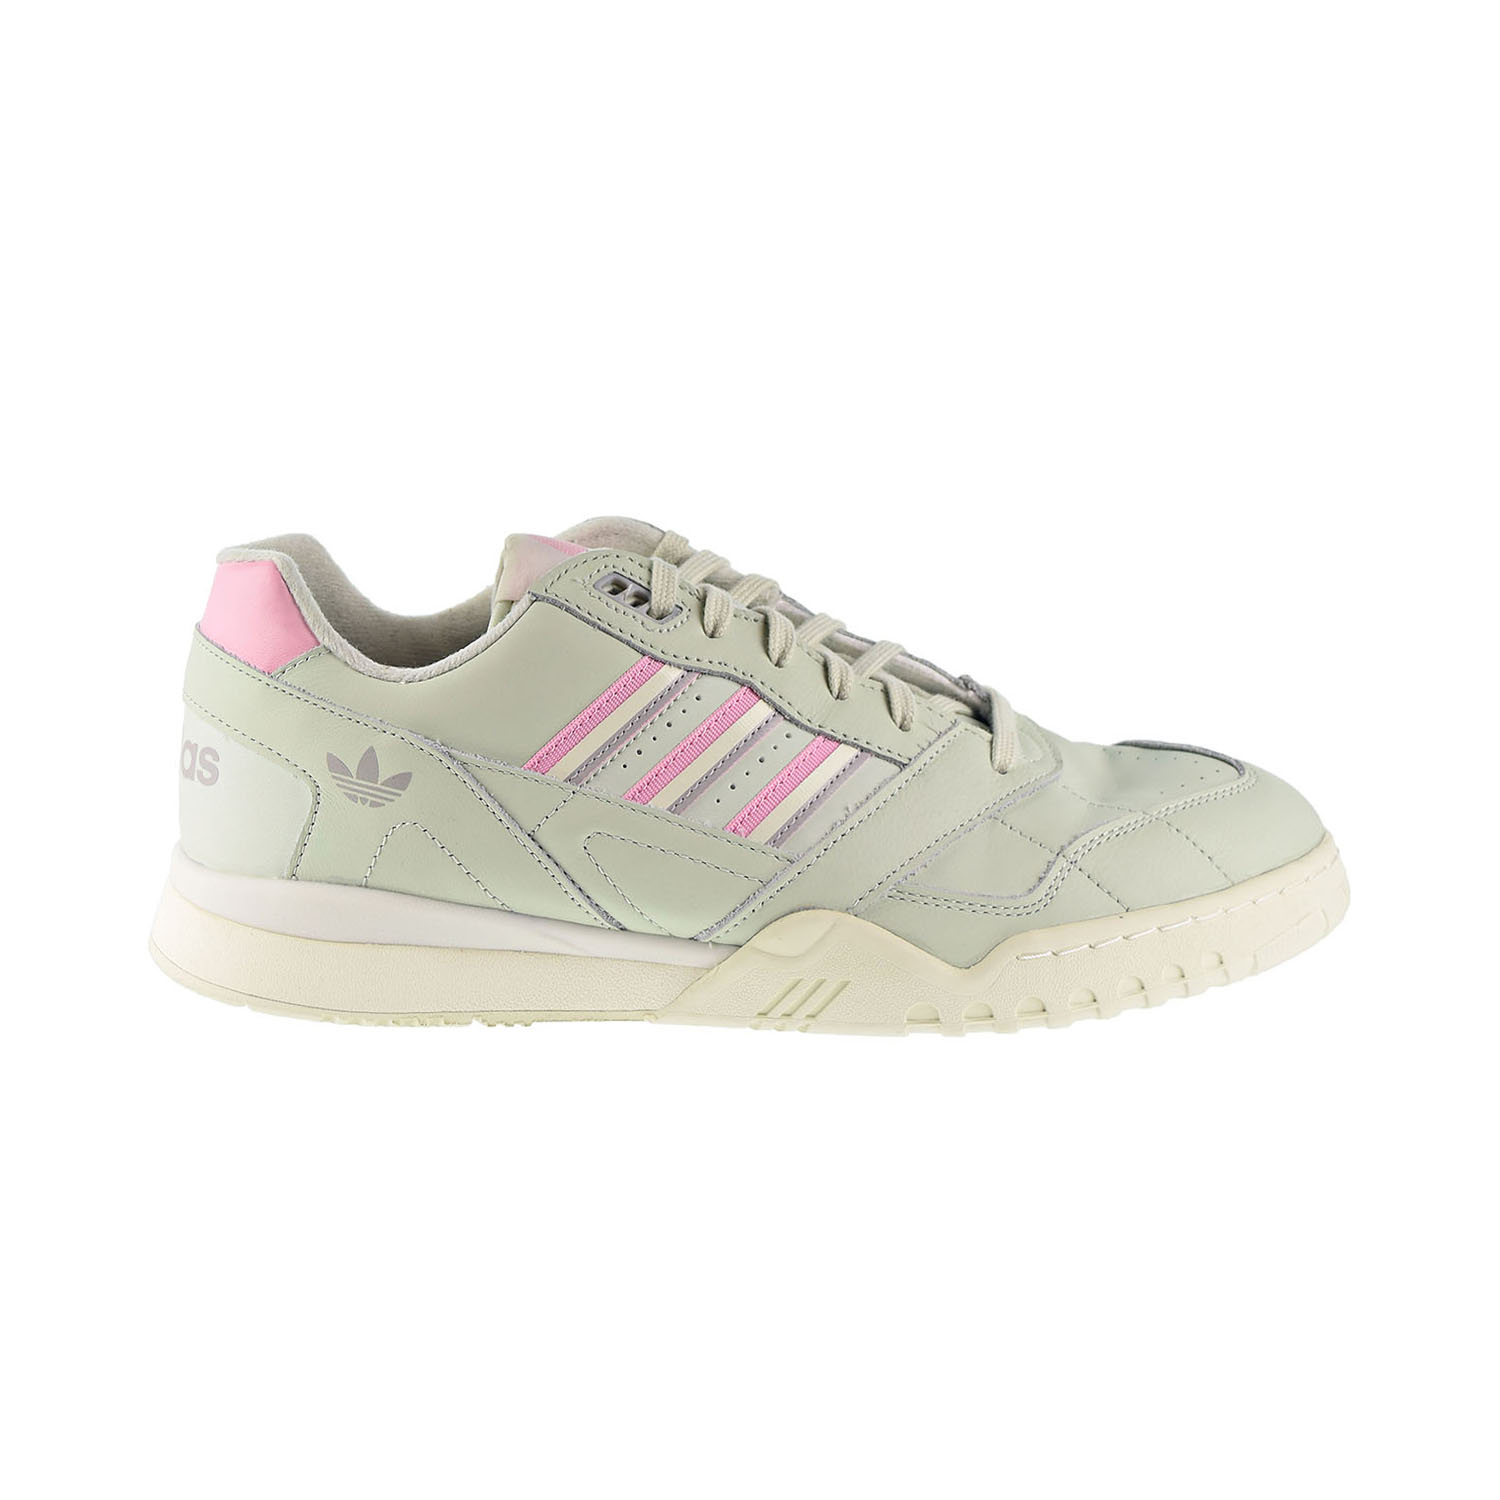 Details about Adidas Originals A.R. Trainer Men's Shoes Linen Green True Pink Off White d98156